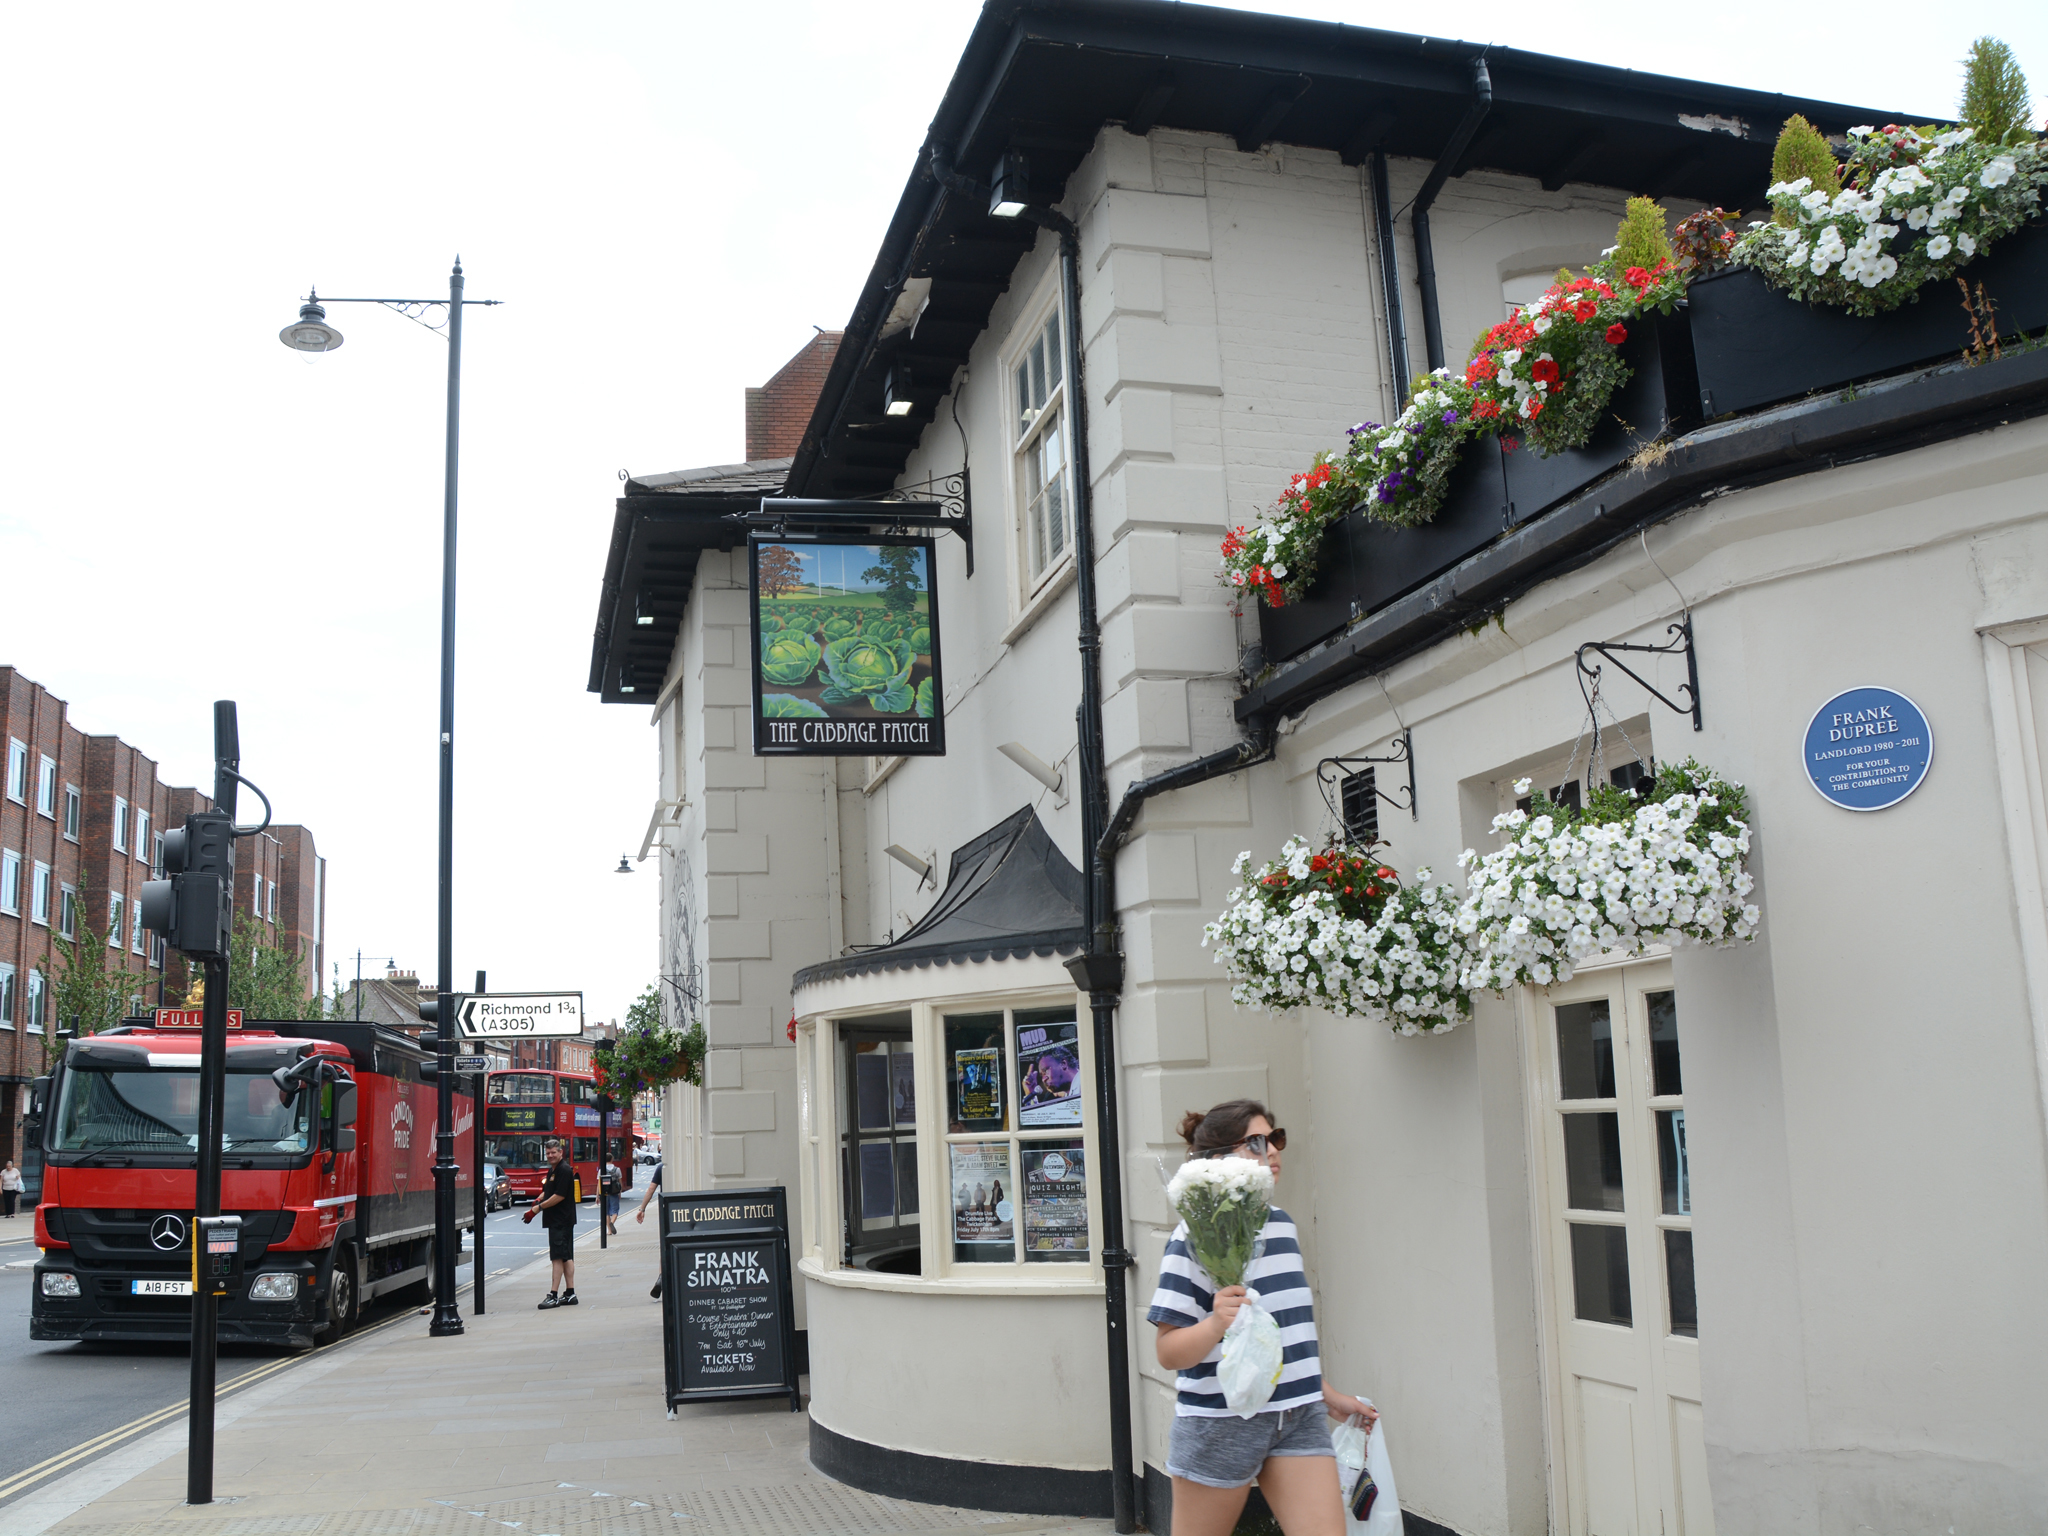 Rugby pubs in London